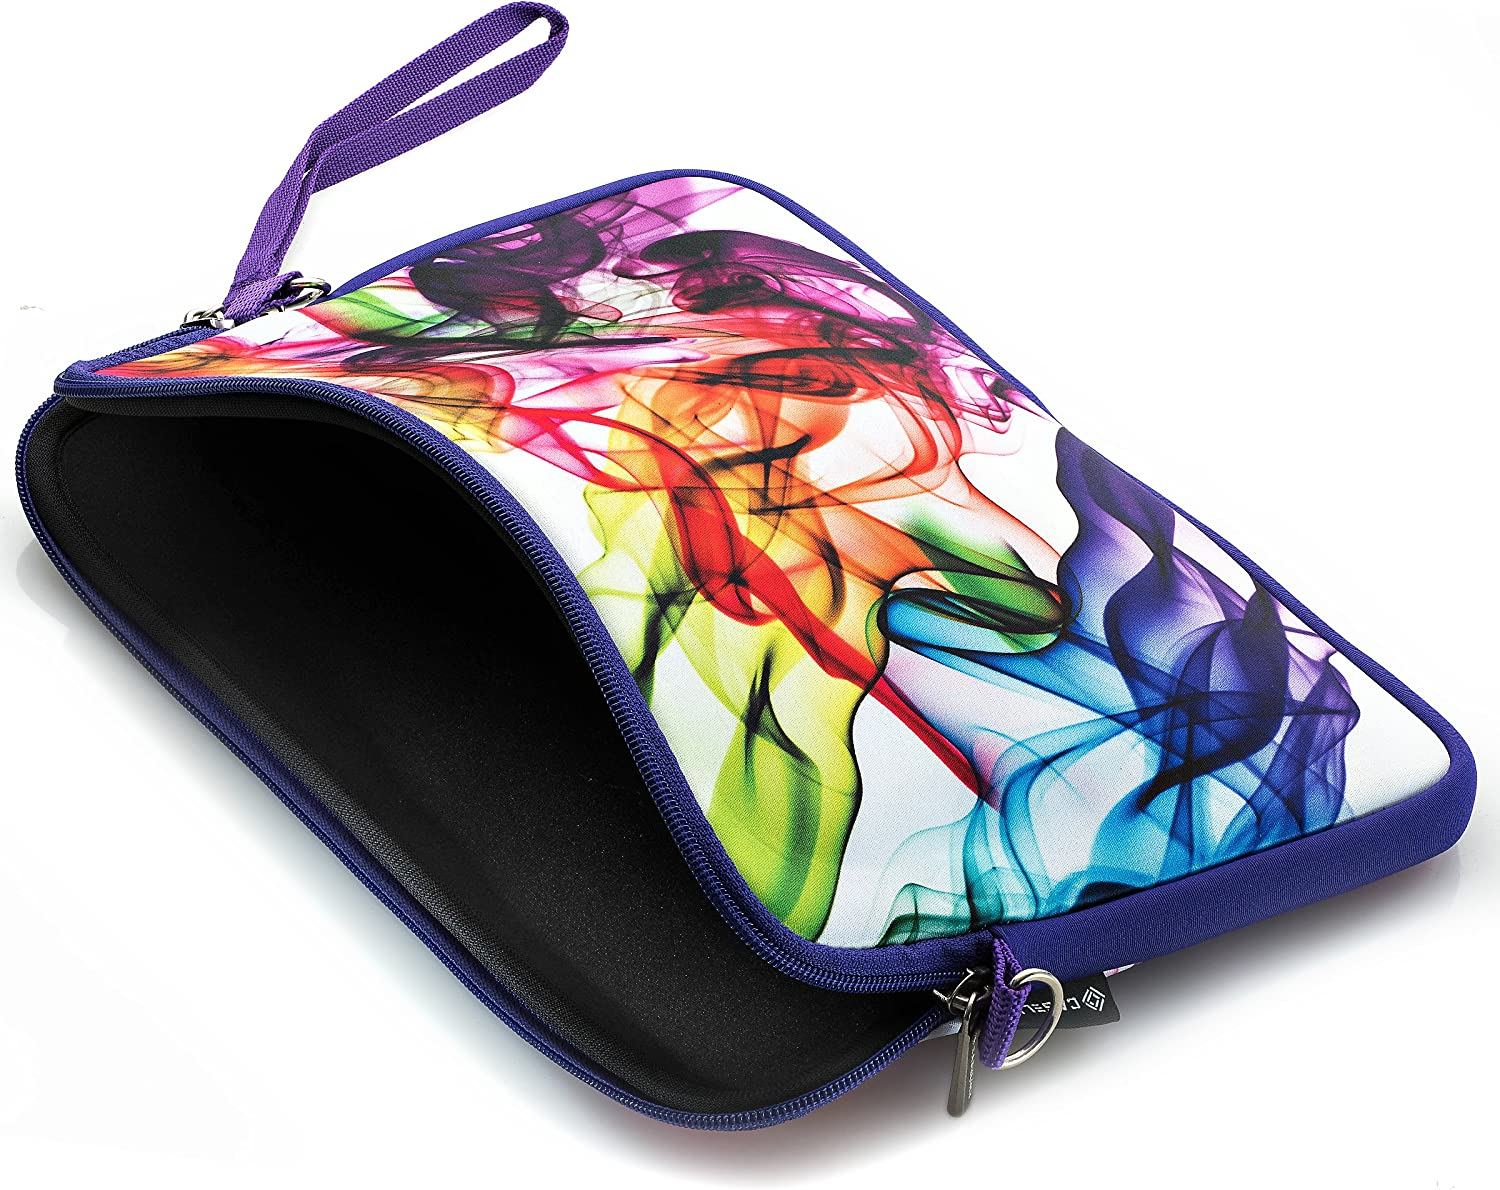 Colorful Caseling Neoprene Sleeve Pouch Case Bag for 14 Inch Laptop Computer Designed to fit Any Laptop Notebook Ultrabook MacBook with Display Size 1 inches